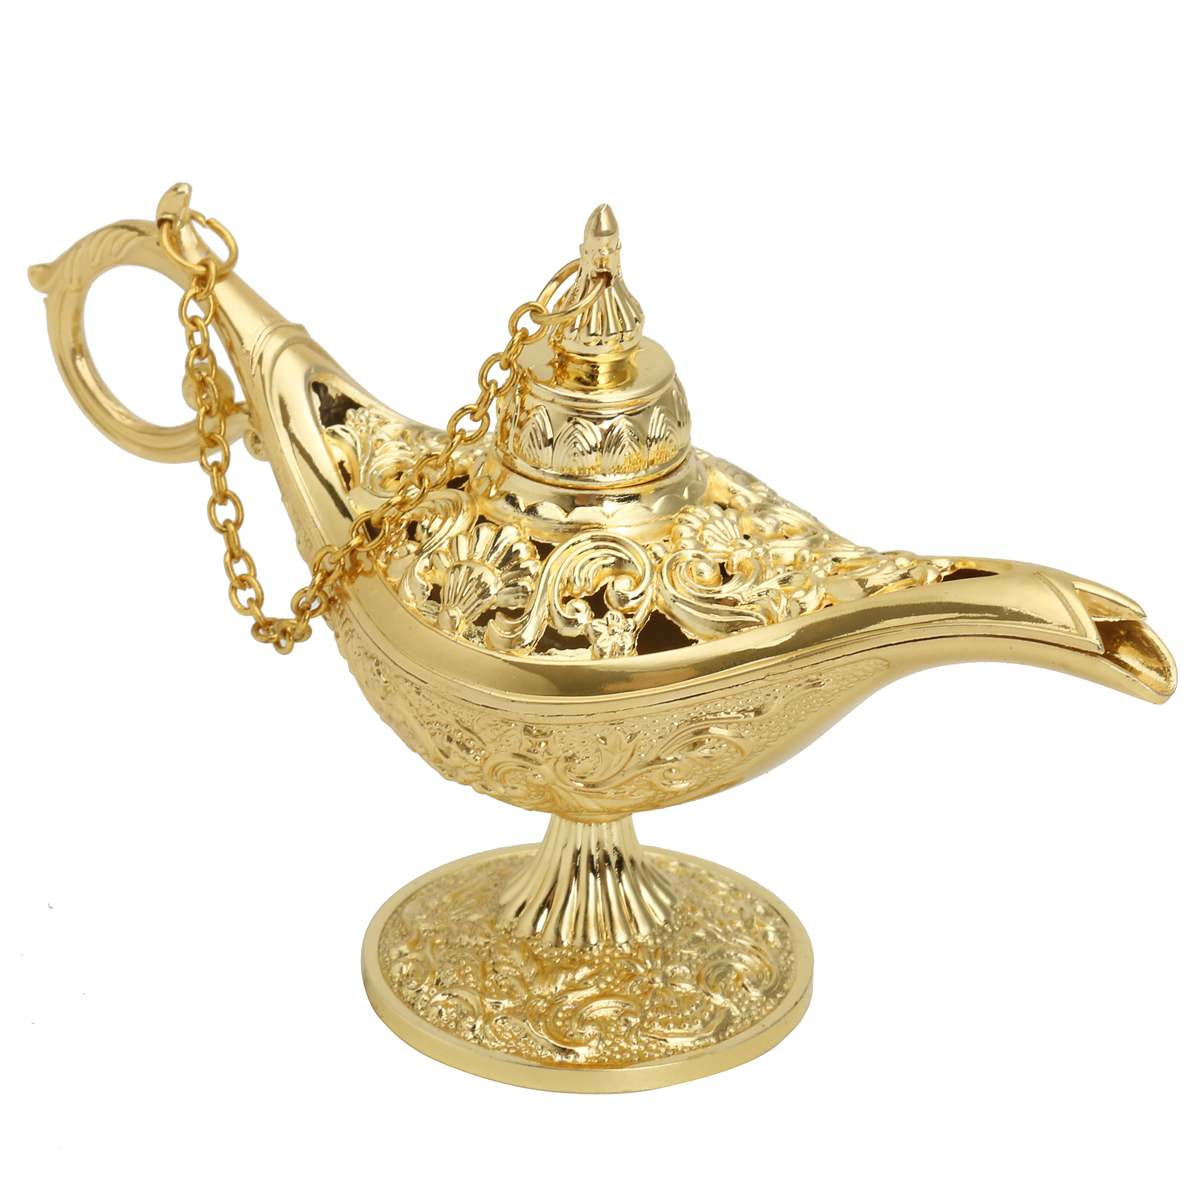 12.8x8.2cm Collectable Classic Carved Rare Legend Aladdin Lamp Novelty Light Lamp Metal Gold Zincalloy Home Decor Craft Gift New